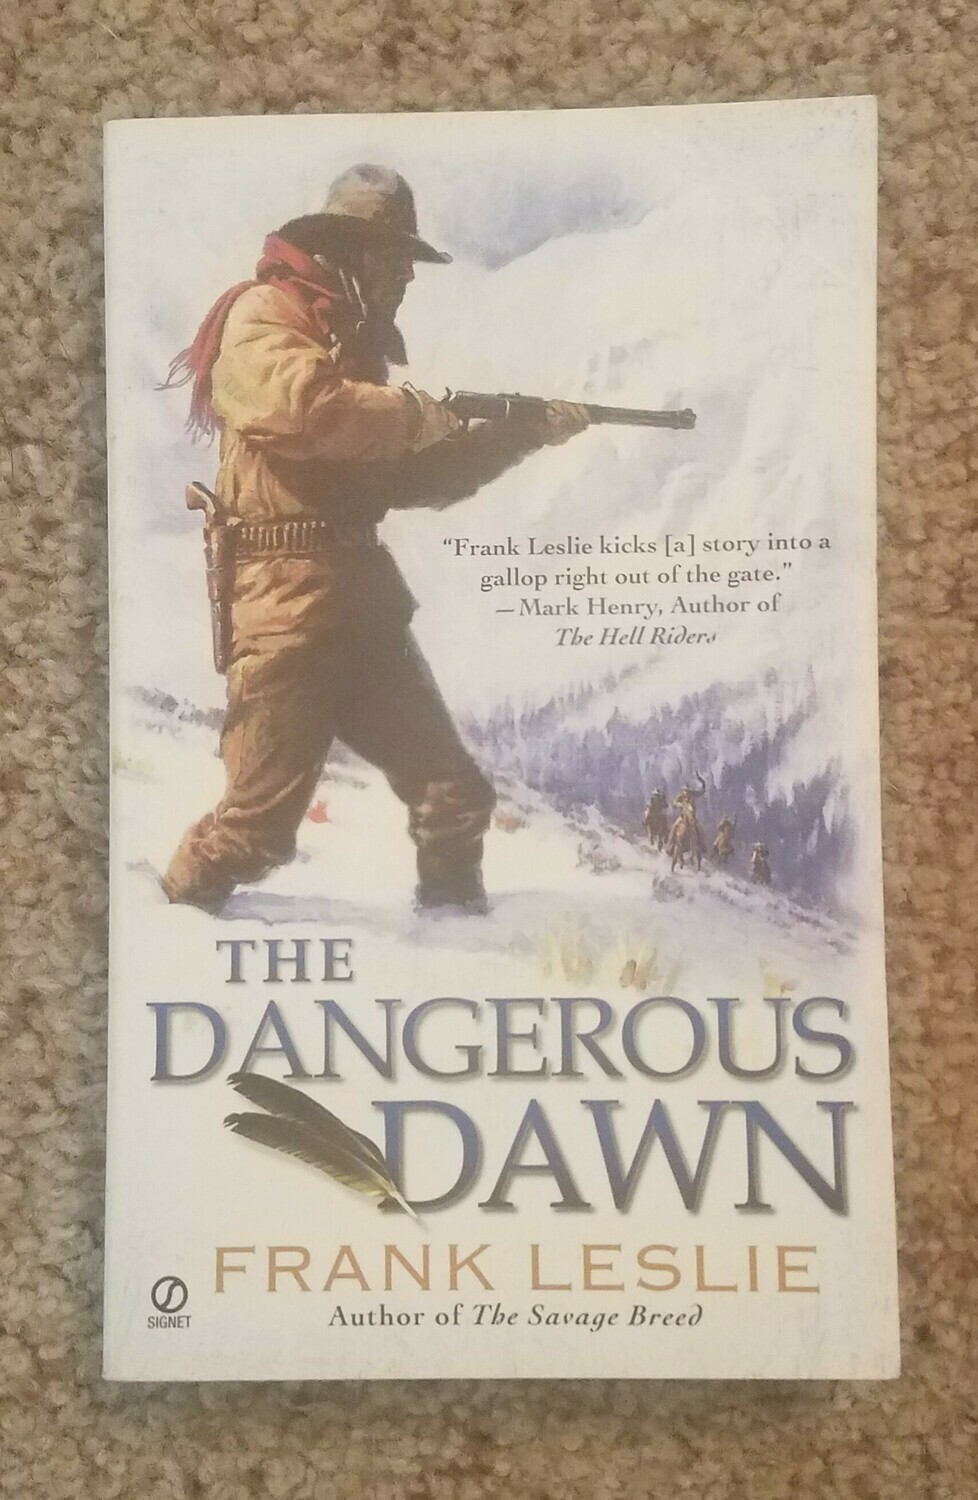 The Dangerous Dawn by Frank Leslie